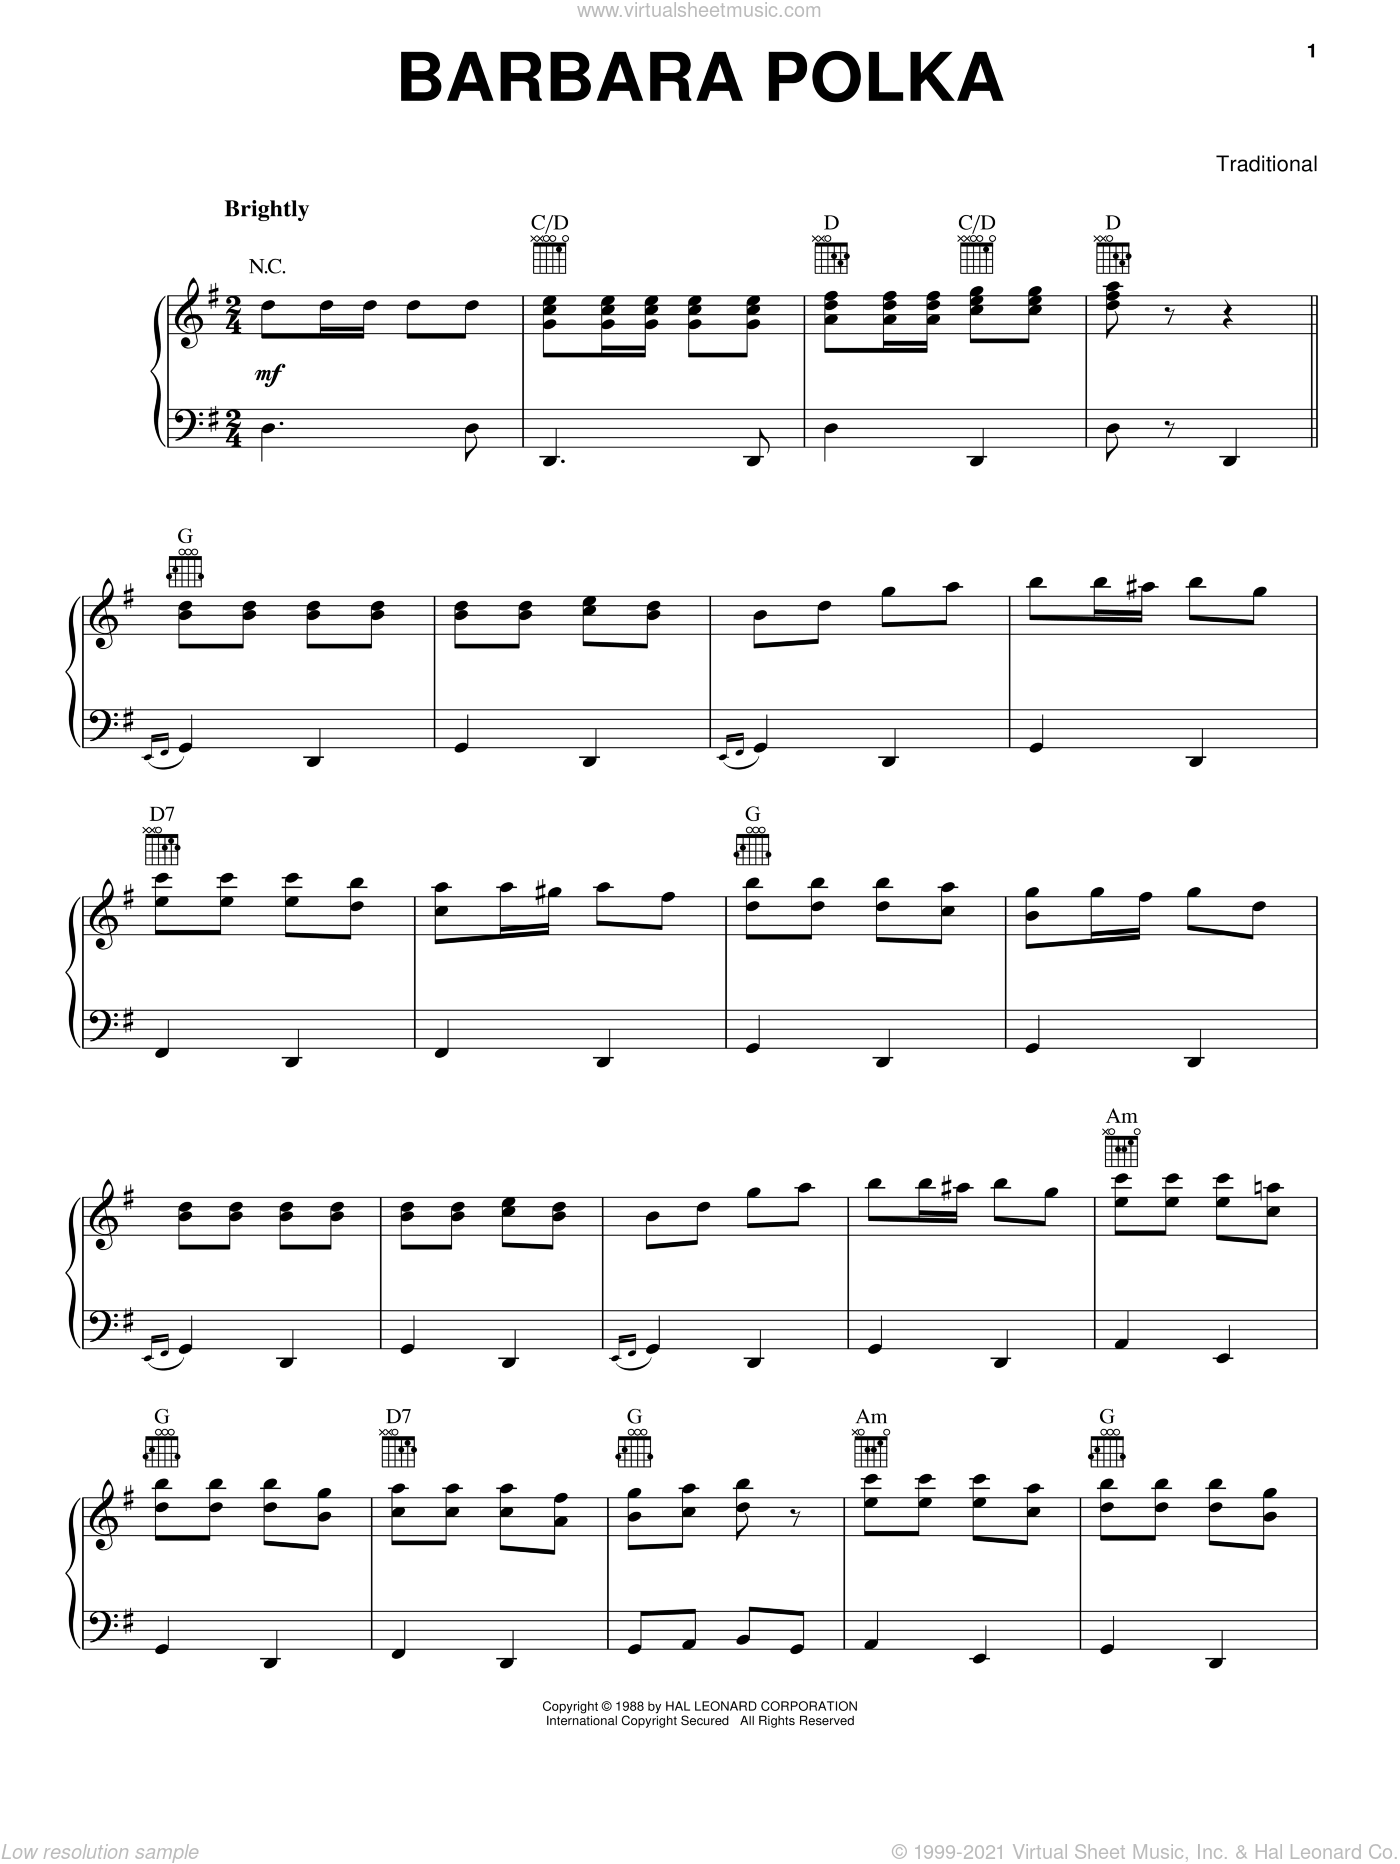 Barbara Polka sheet music for voice, piano or guitar, intermediate skill level